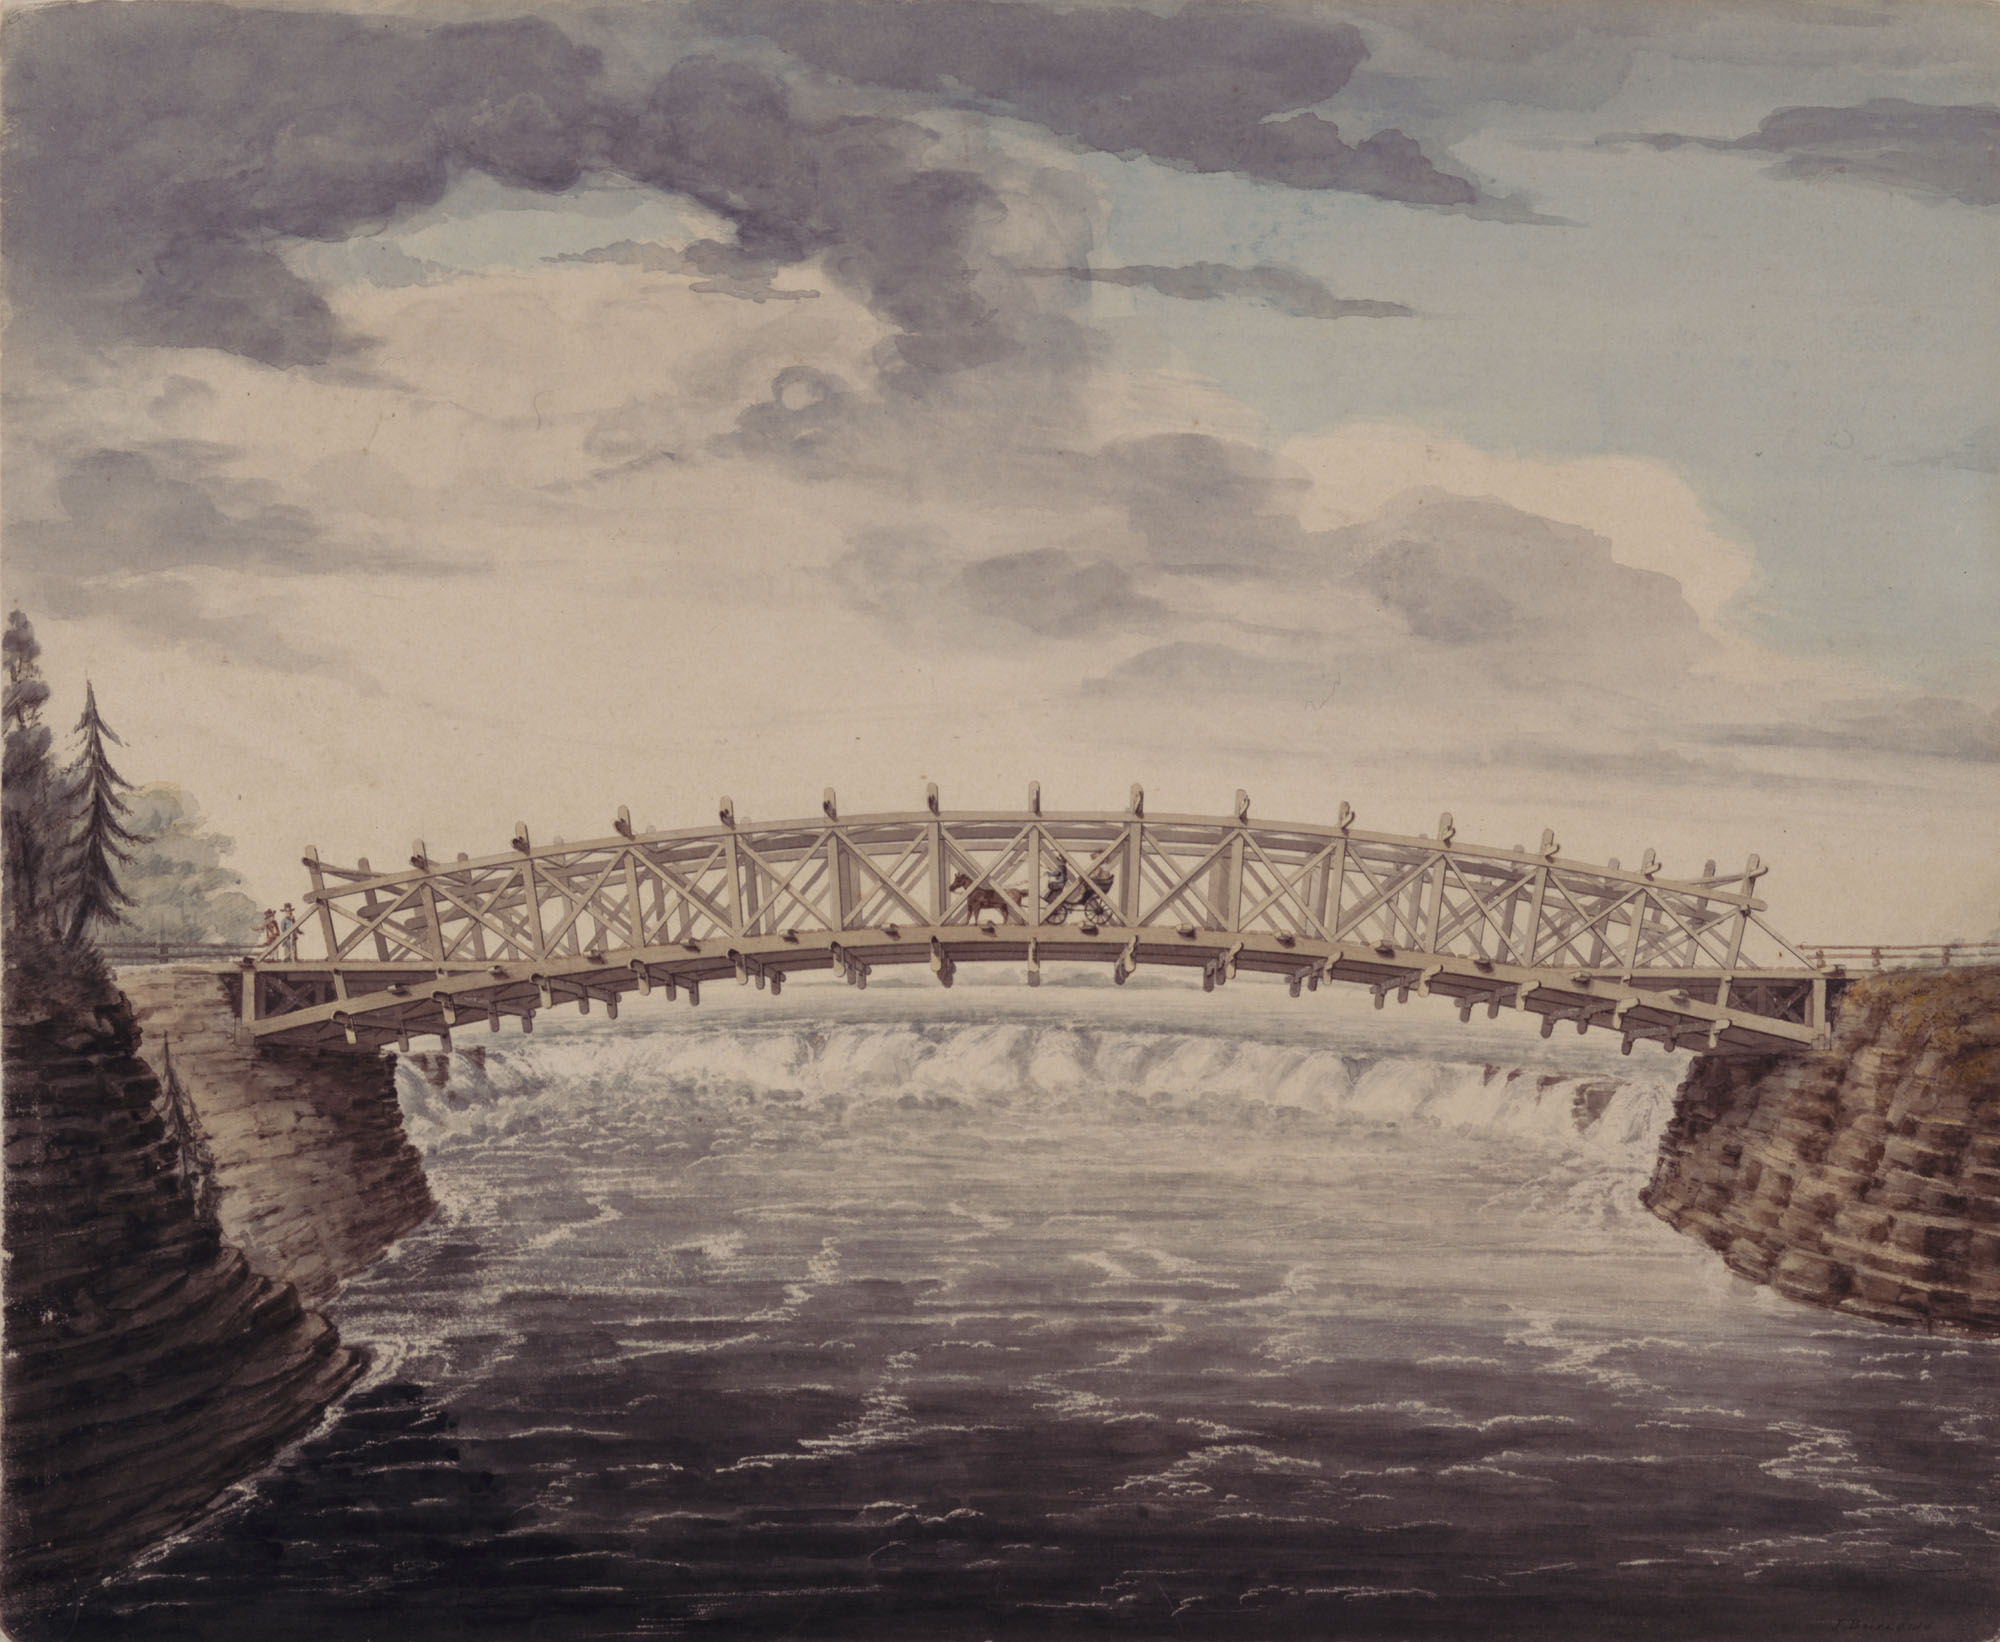 A watercolour image with pen and ink over pencil on paper showing a bridge spanning the Ottawa River with the falls seen beyond and below the bridge's arch.